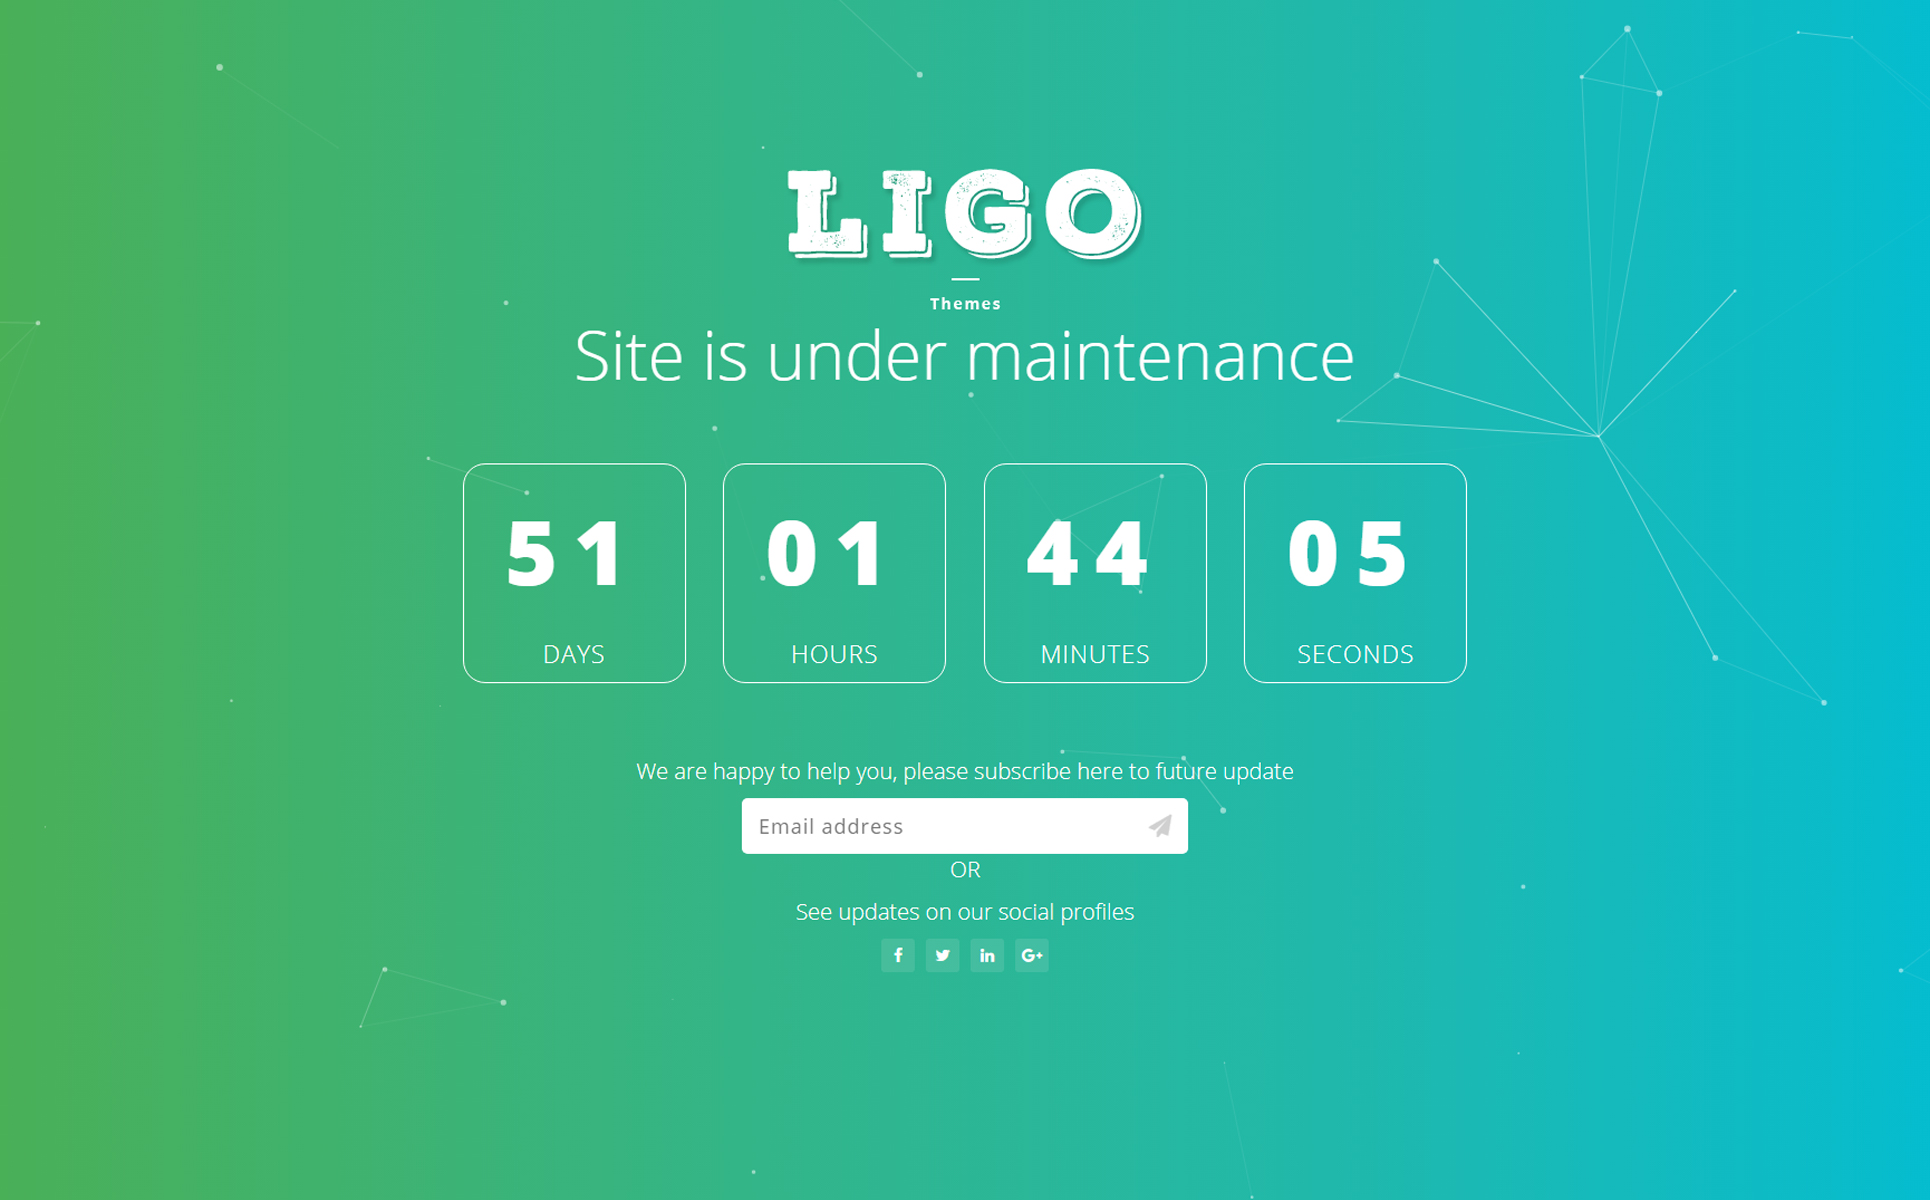 Ligothemes coming soon landing page template 65705 ligothemes coming soon landing page template big screenshot zoom in live demo maxwellsz